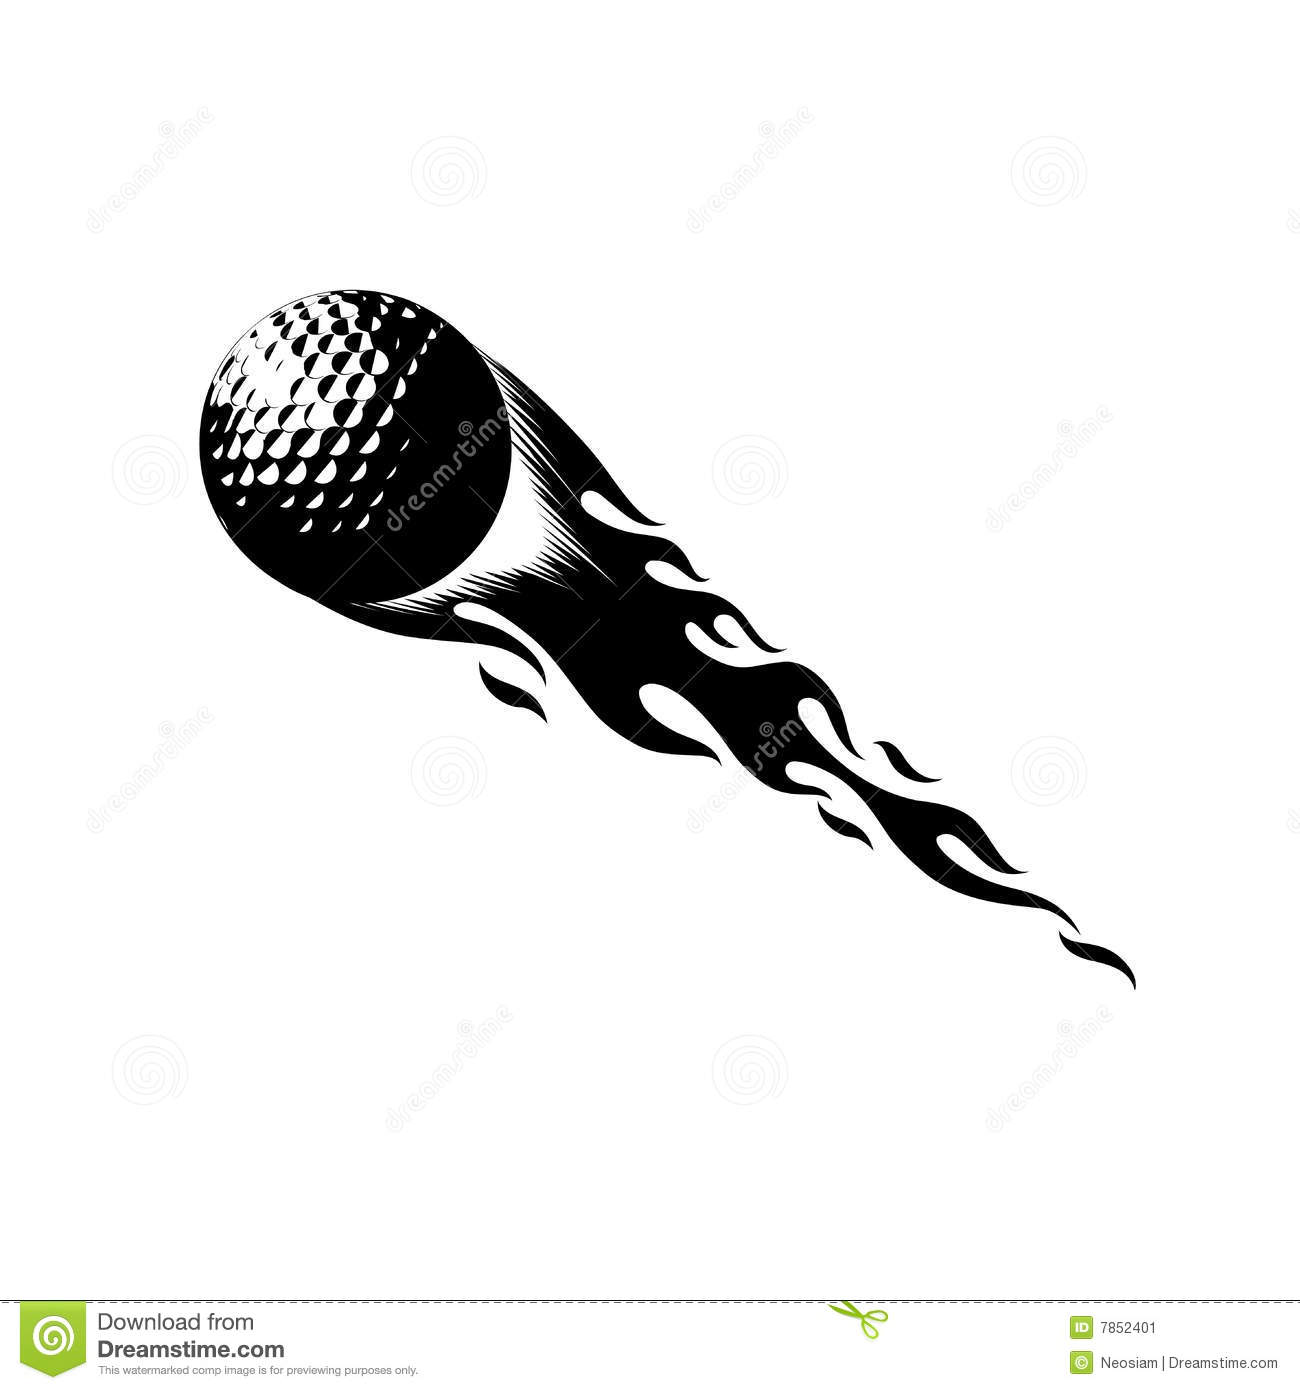 Golf Ball clipart angry Flaming ClipartFest golf Flaming clipart